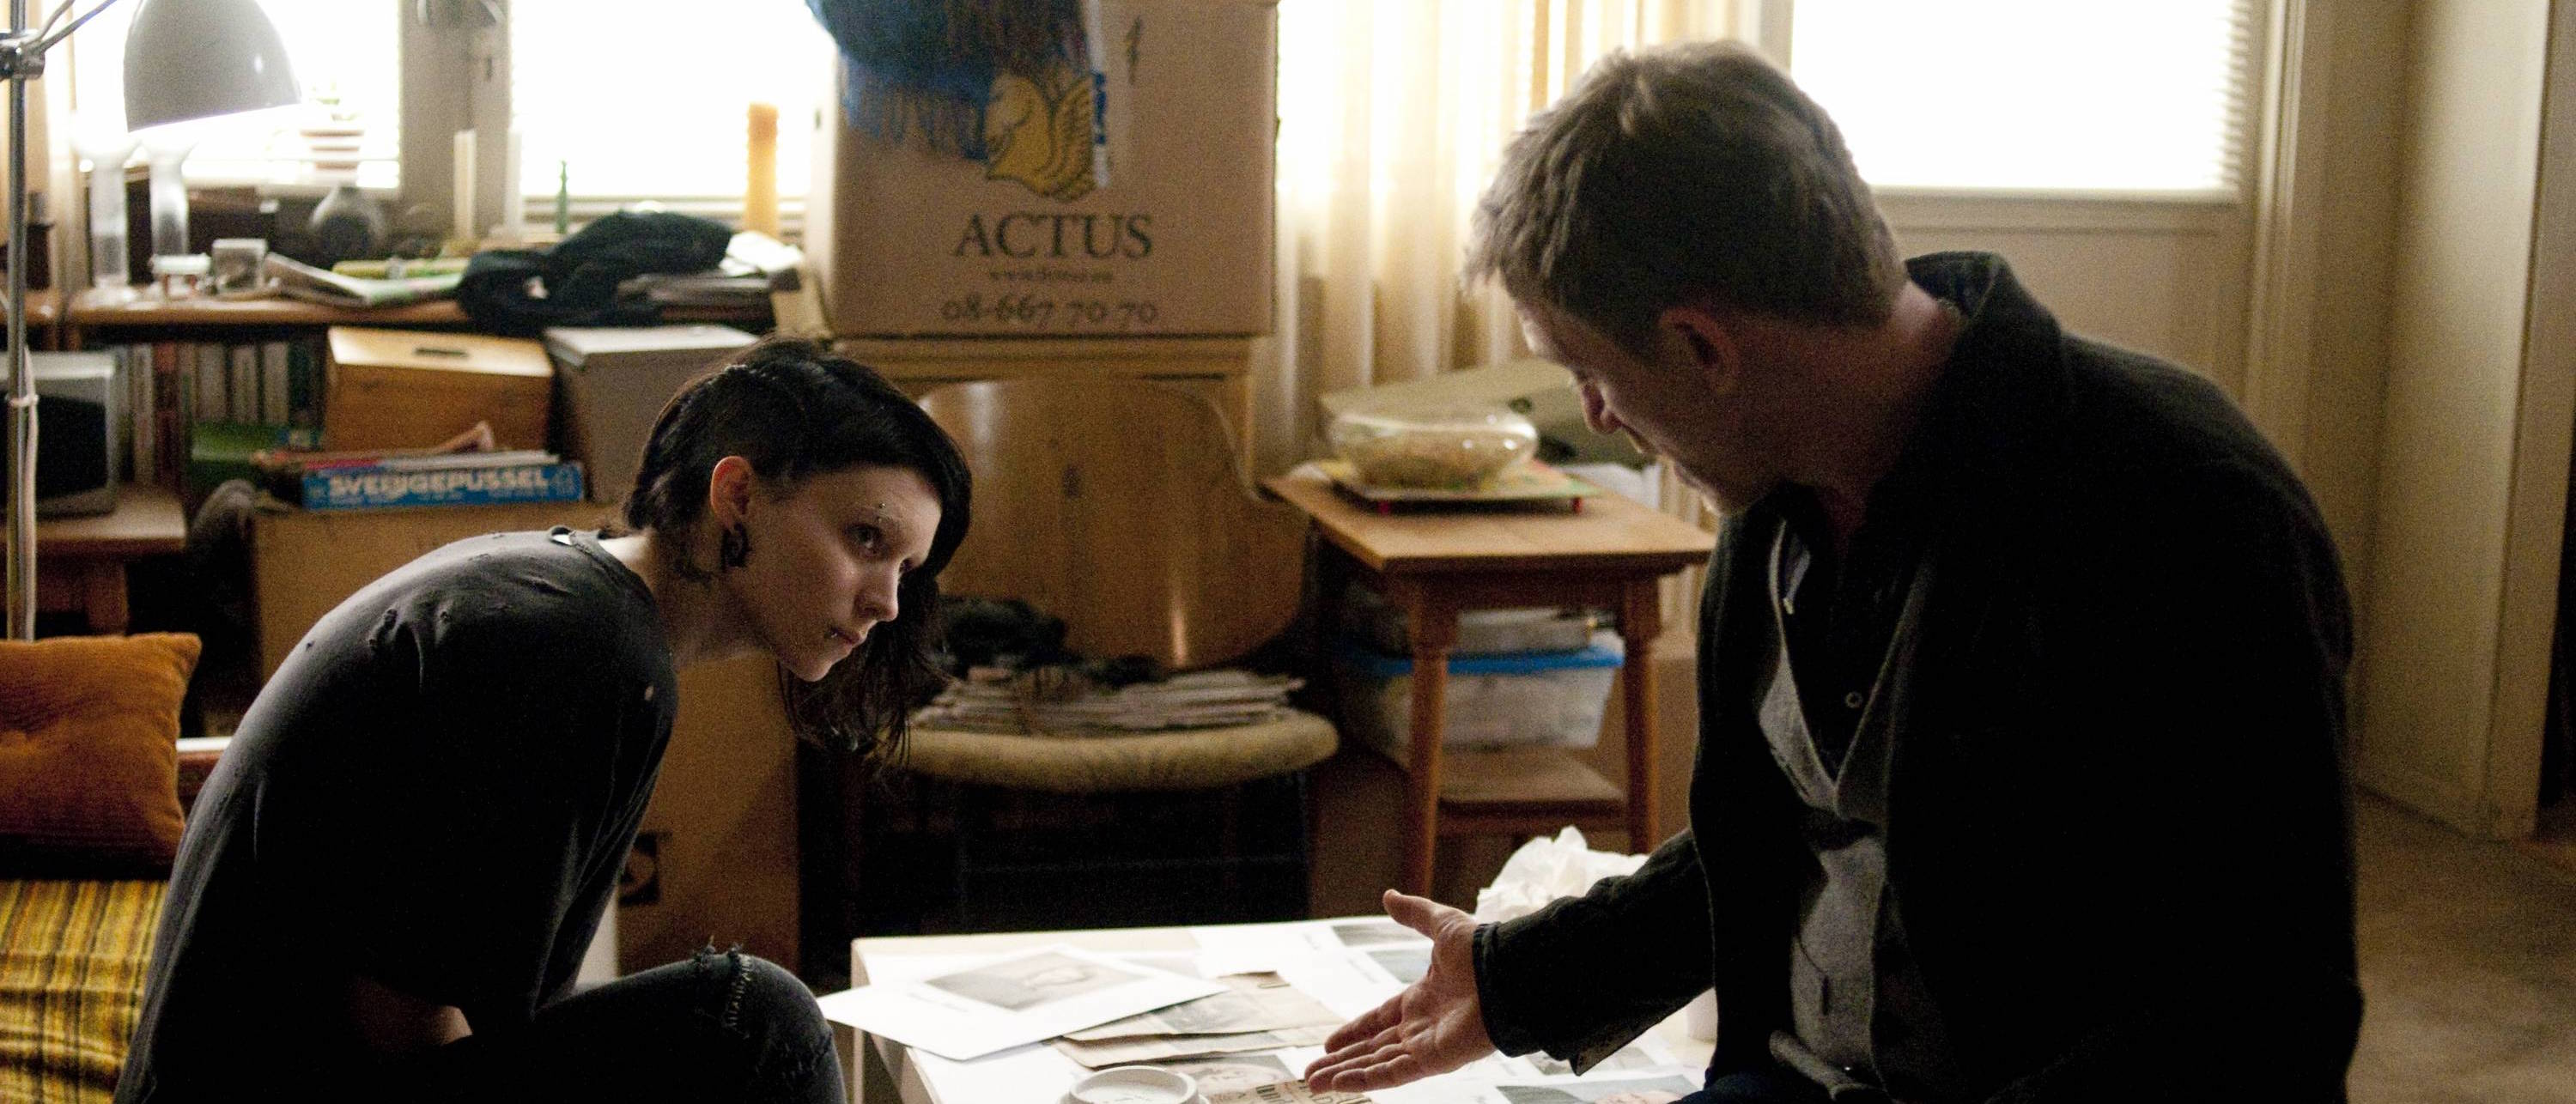 Dragon tattoo sequel moves forward without rooney mara for Sequel to girl with dragon tattoo